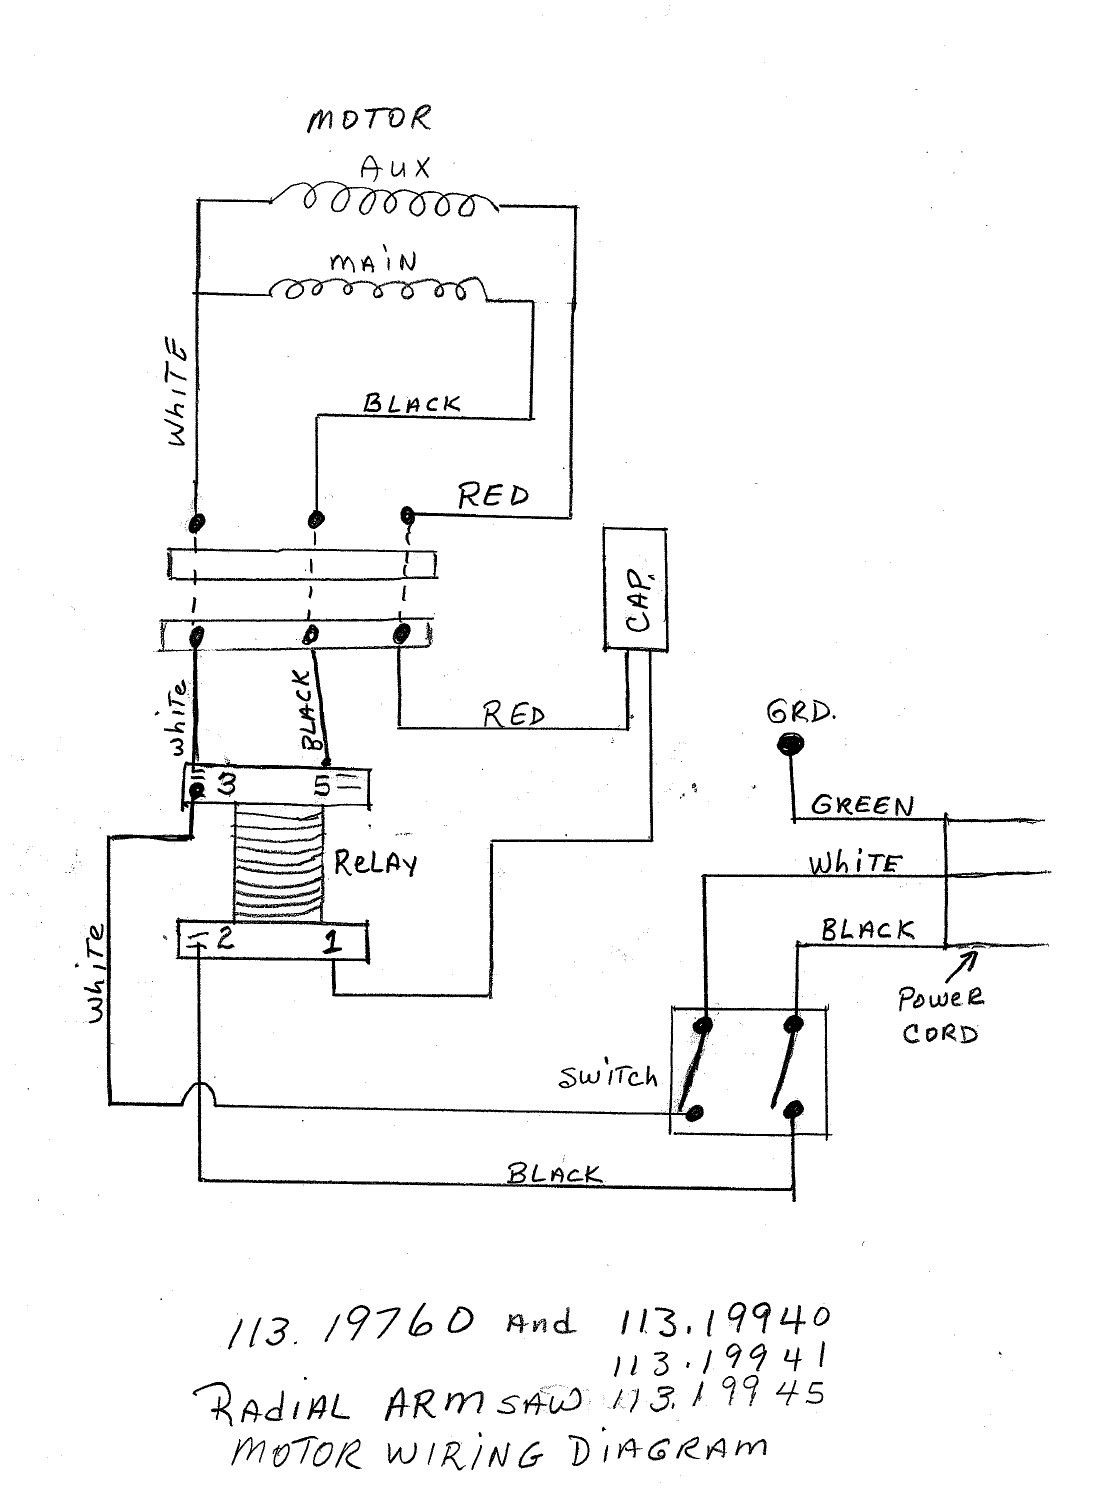 Wiring Diagram For Delta Radial Arm Saw | Wiring Diagram on